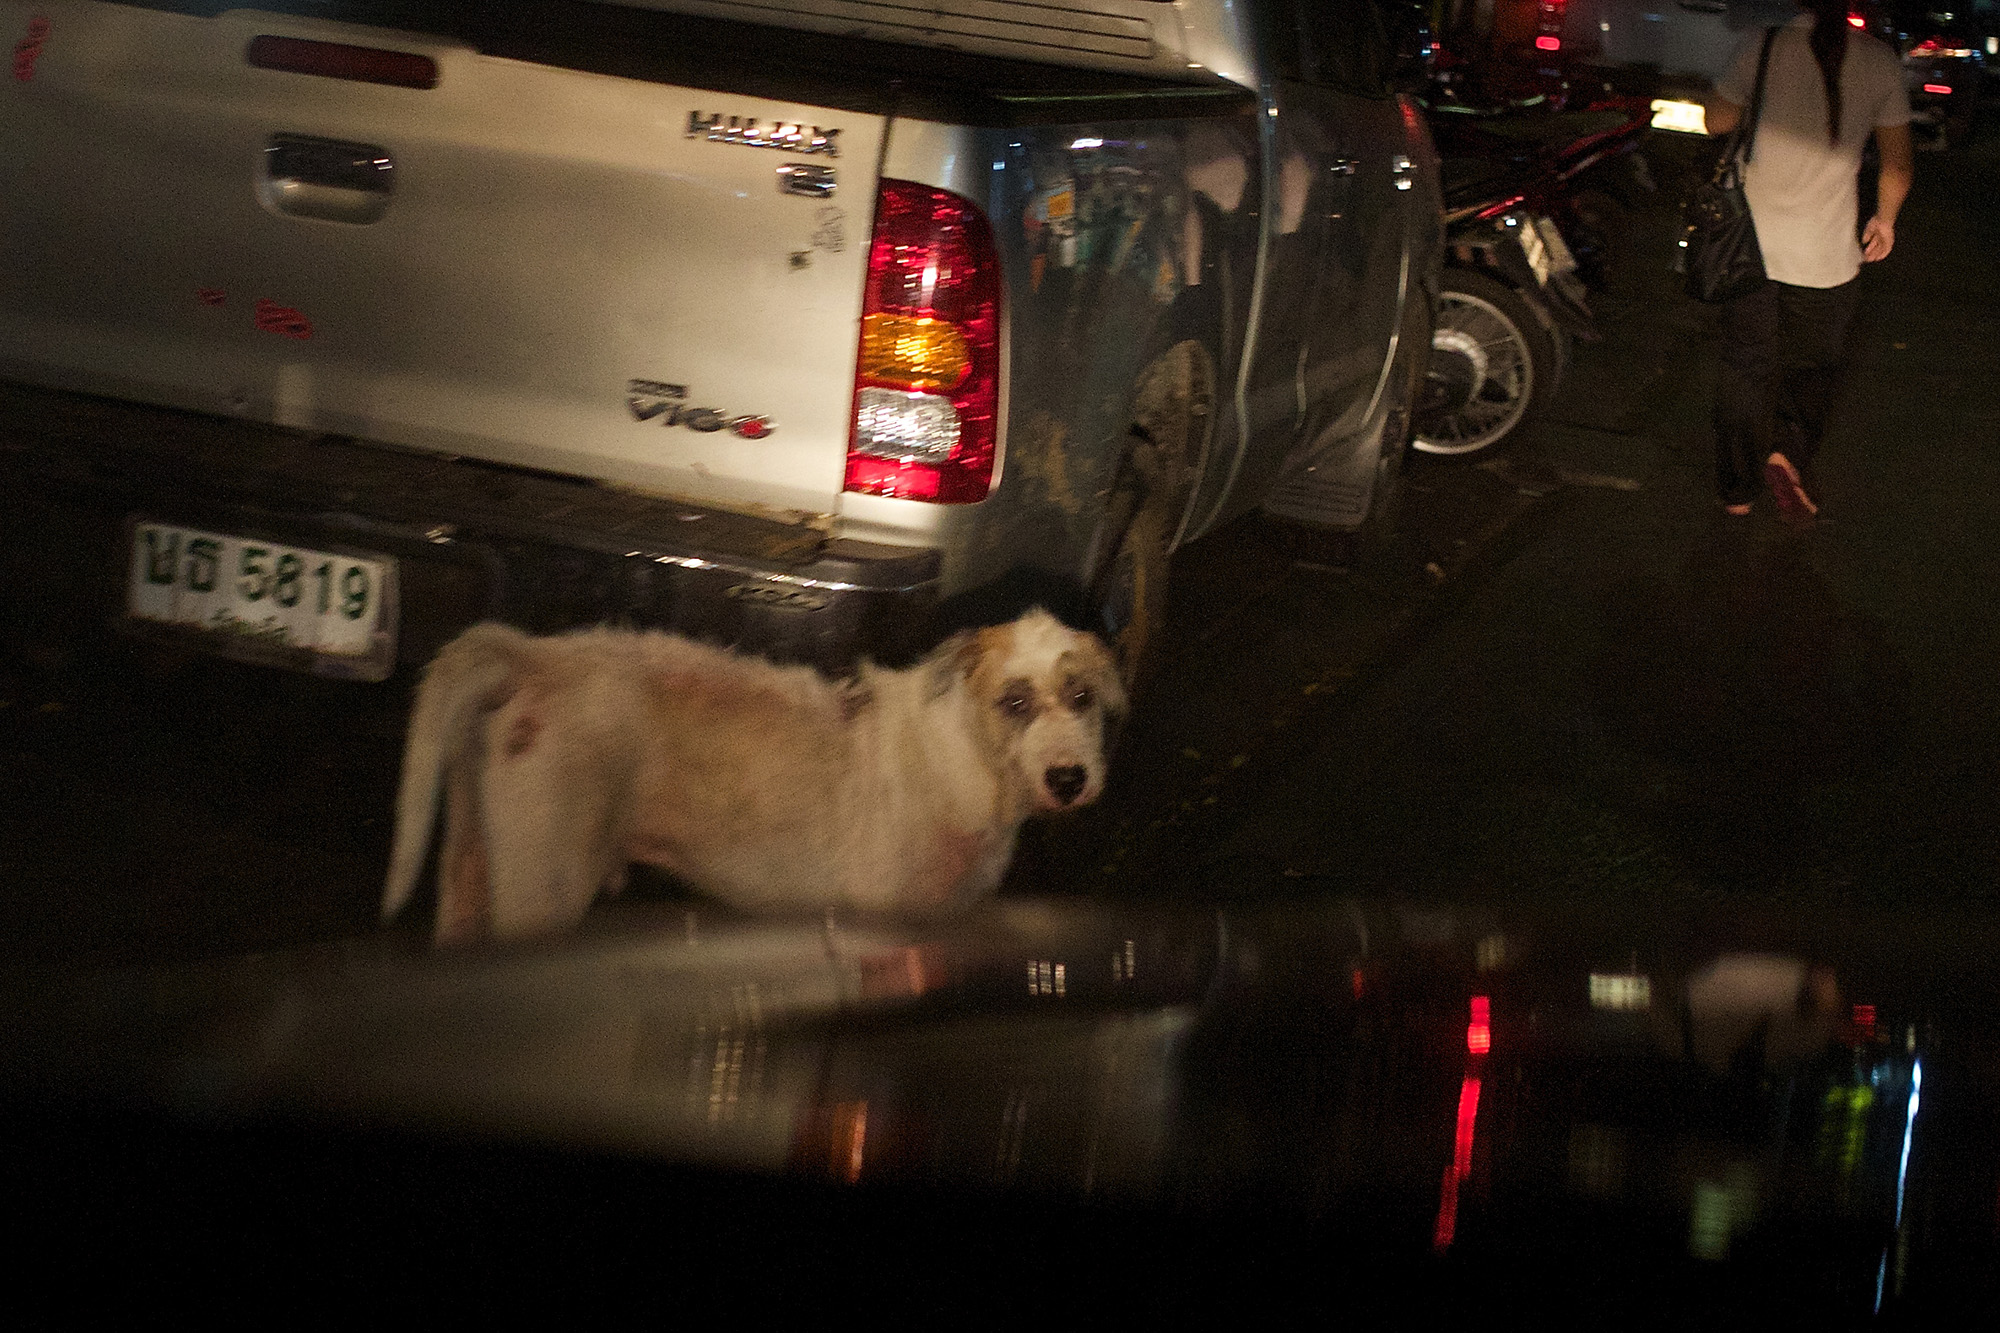 stray dog, in headlamps